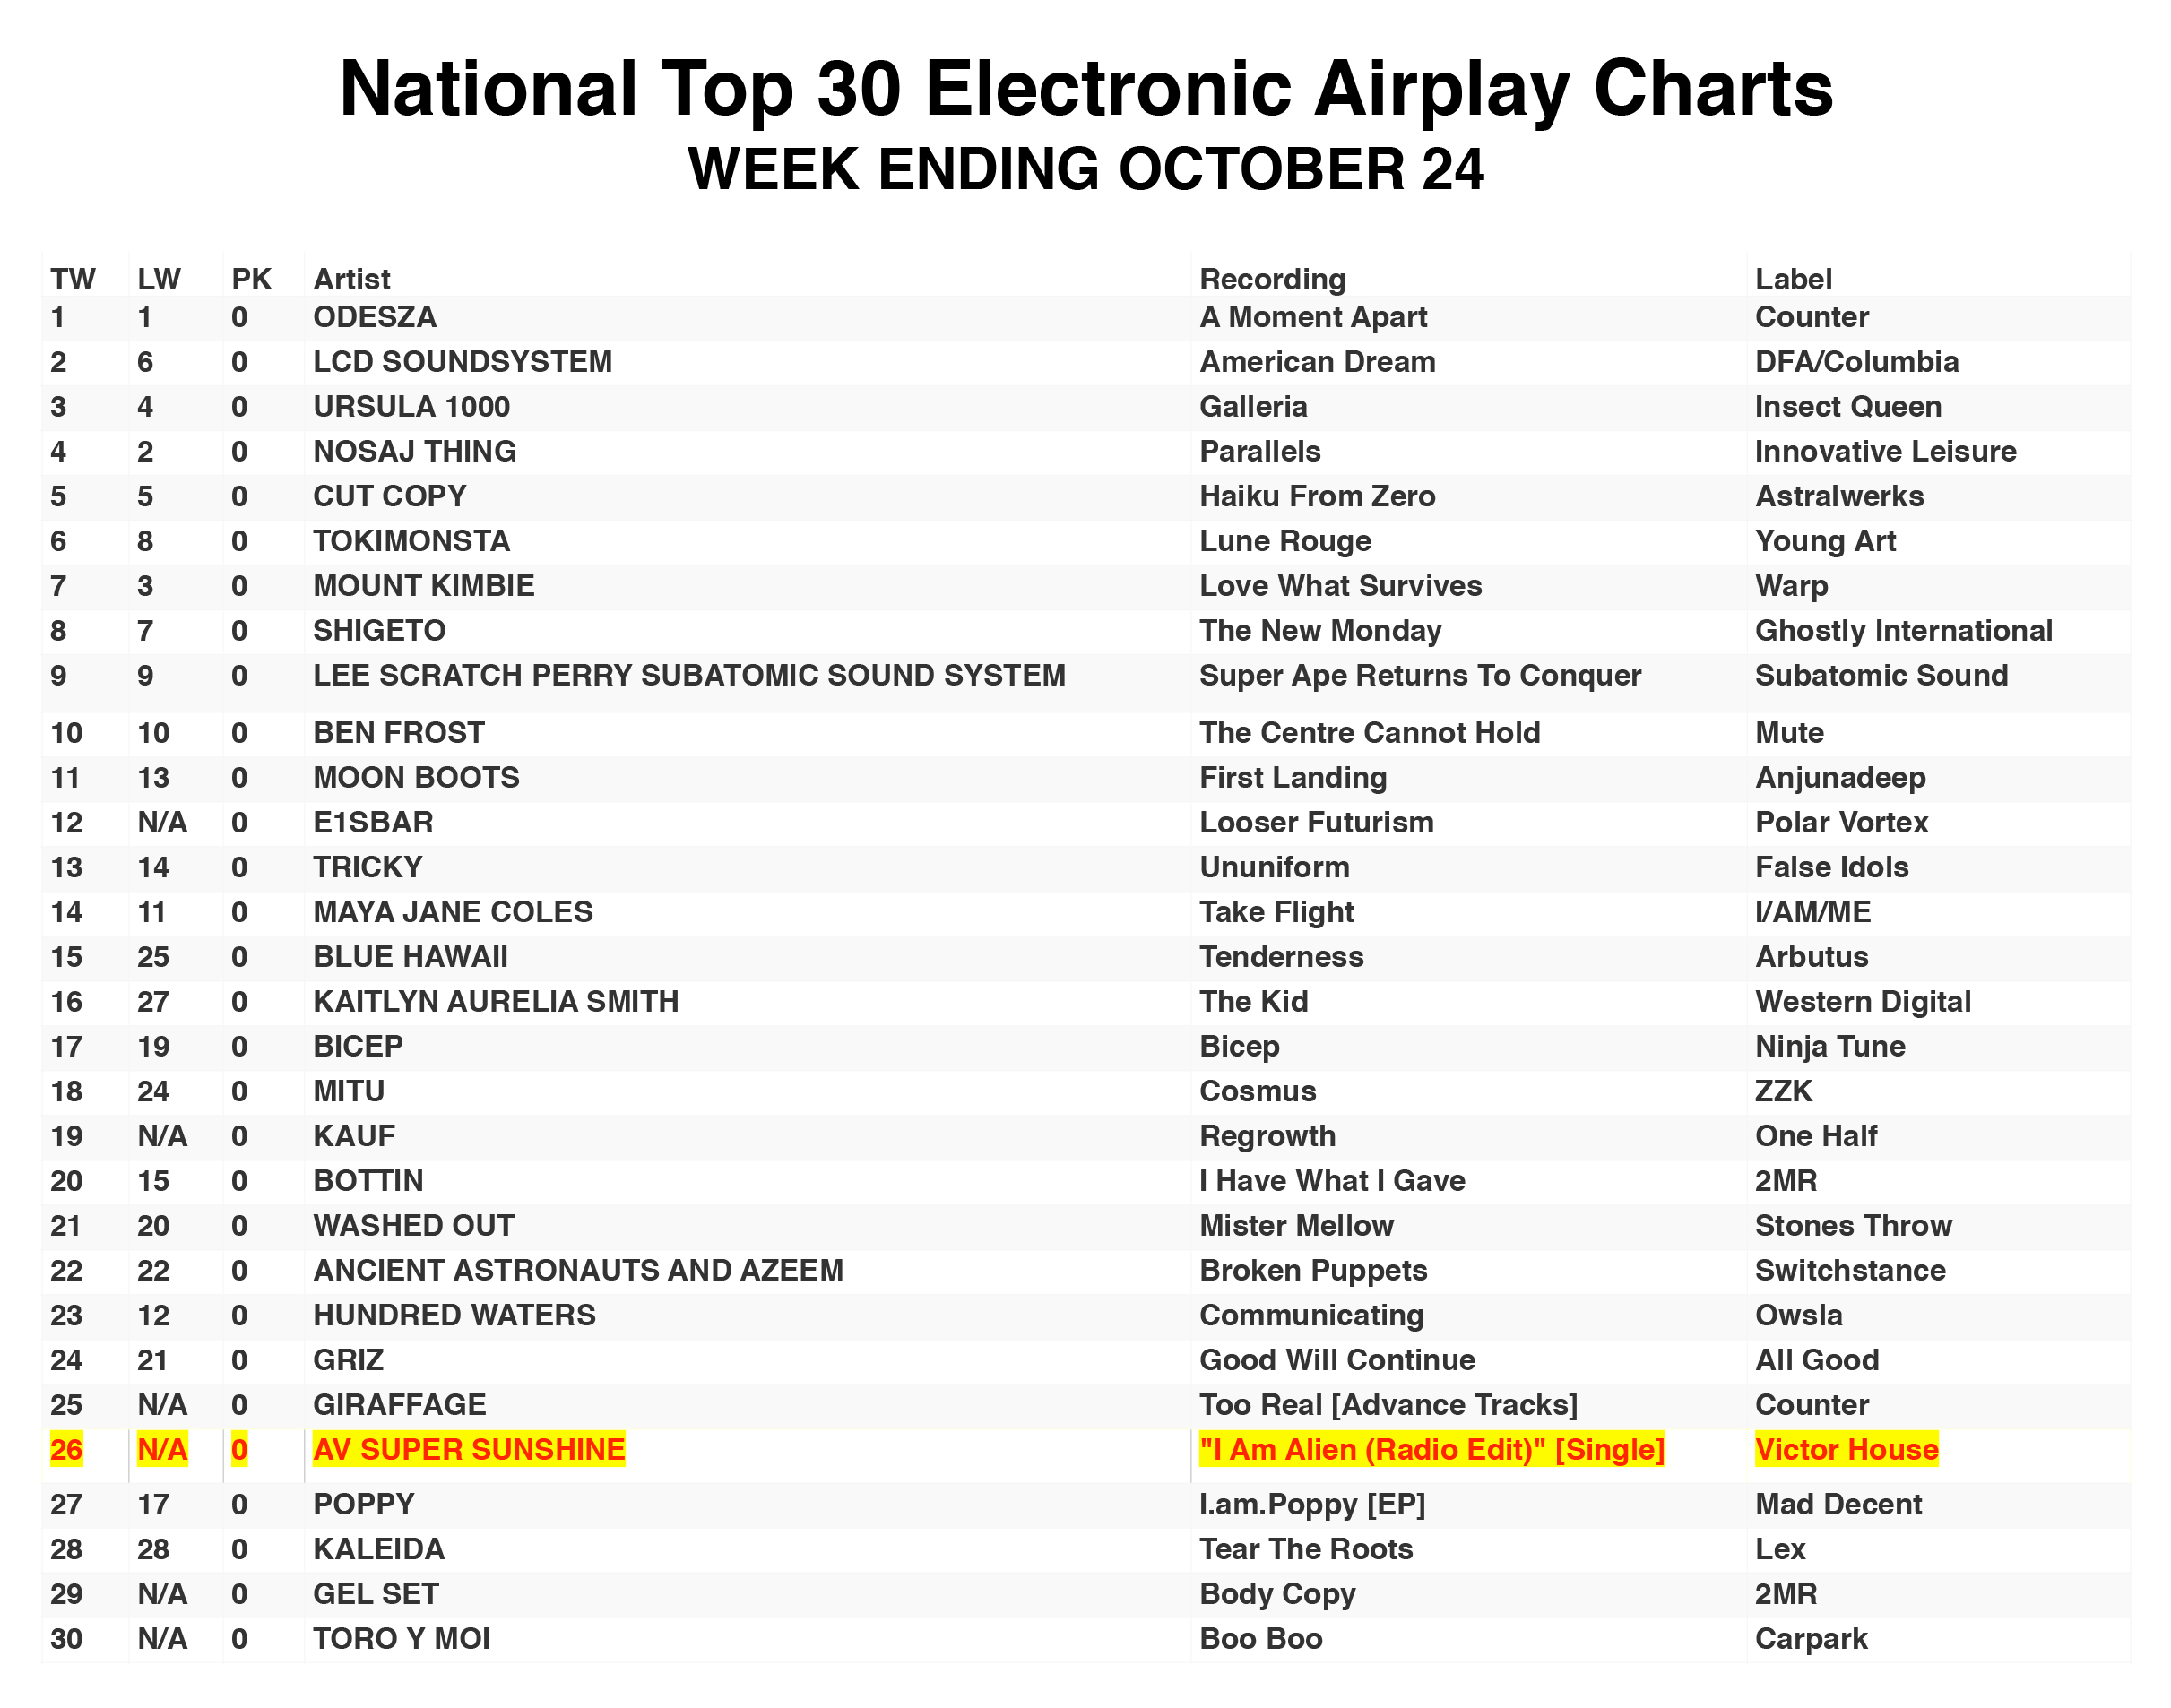 National-Top-30-Electronic-Airplay-Charts102417-resize